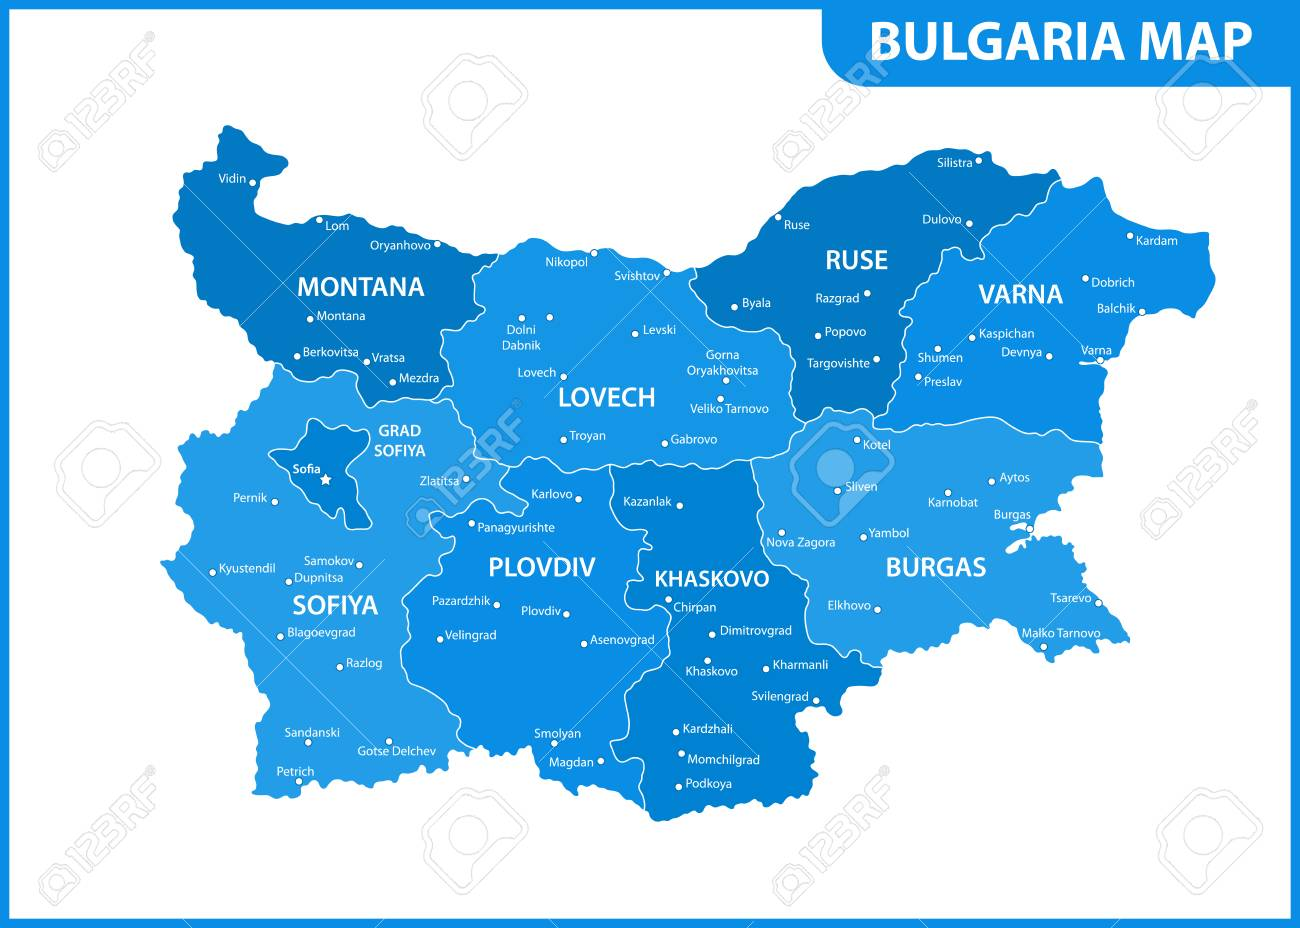 The detailed map of Bulgaria with regions or states and cities,.. on detailed map of ussr, detailed map of bosnia and herzegovina, detailed map of dalmatian coast, detailed map of scottish islands, detailed map of brunei, detailed map of arabia, detailed map of united arab emirates, detailed map romania, detailed map of sub saharan africa, detailed map of marshall islands, detailed map of congo, detailed map of the carribean, detailed map of holland netherlands, detailed map of american continent, detailed map of central african republic, detailed map of the dominican republic, detailed map of usa east coast, detailed map of countries, detailed map of indian ocean, detailed map of west bank,